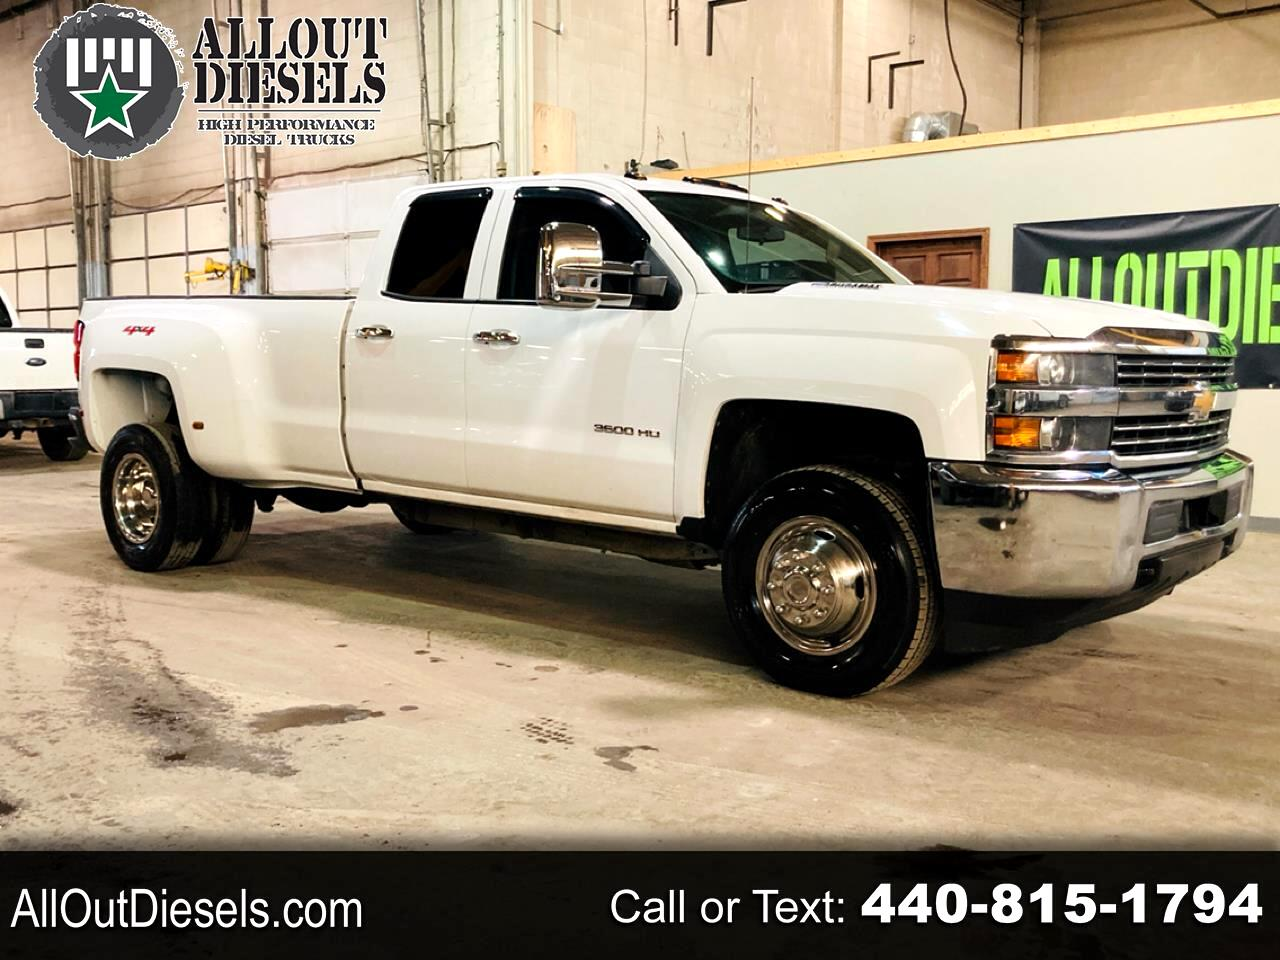 "Chevrolet Silverado 3500HD 4WD Double Cab 158.1"" Work Truck 2015"